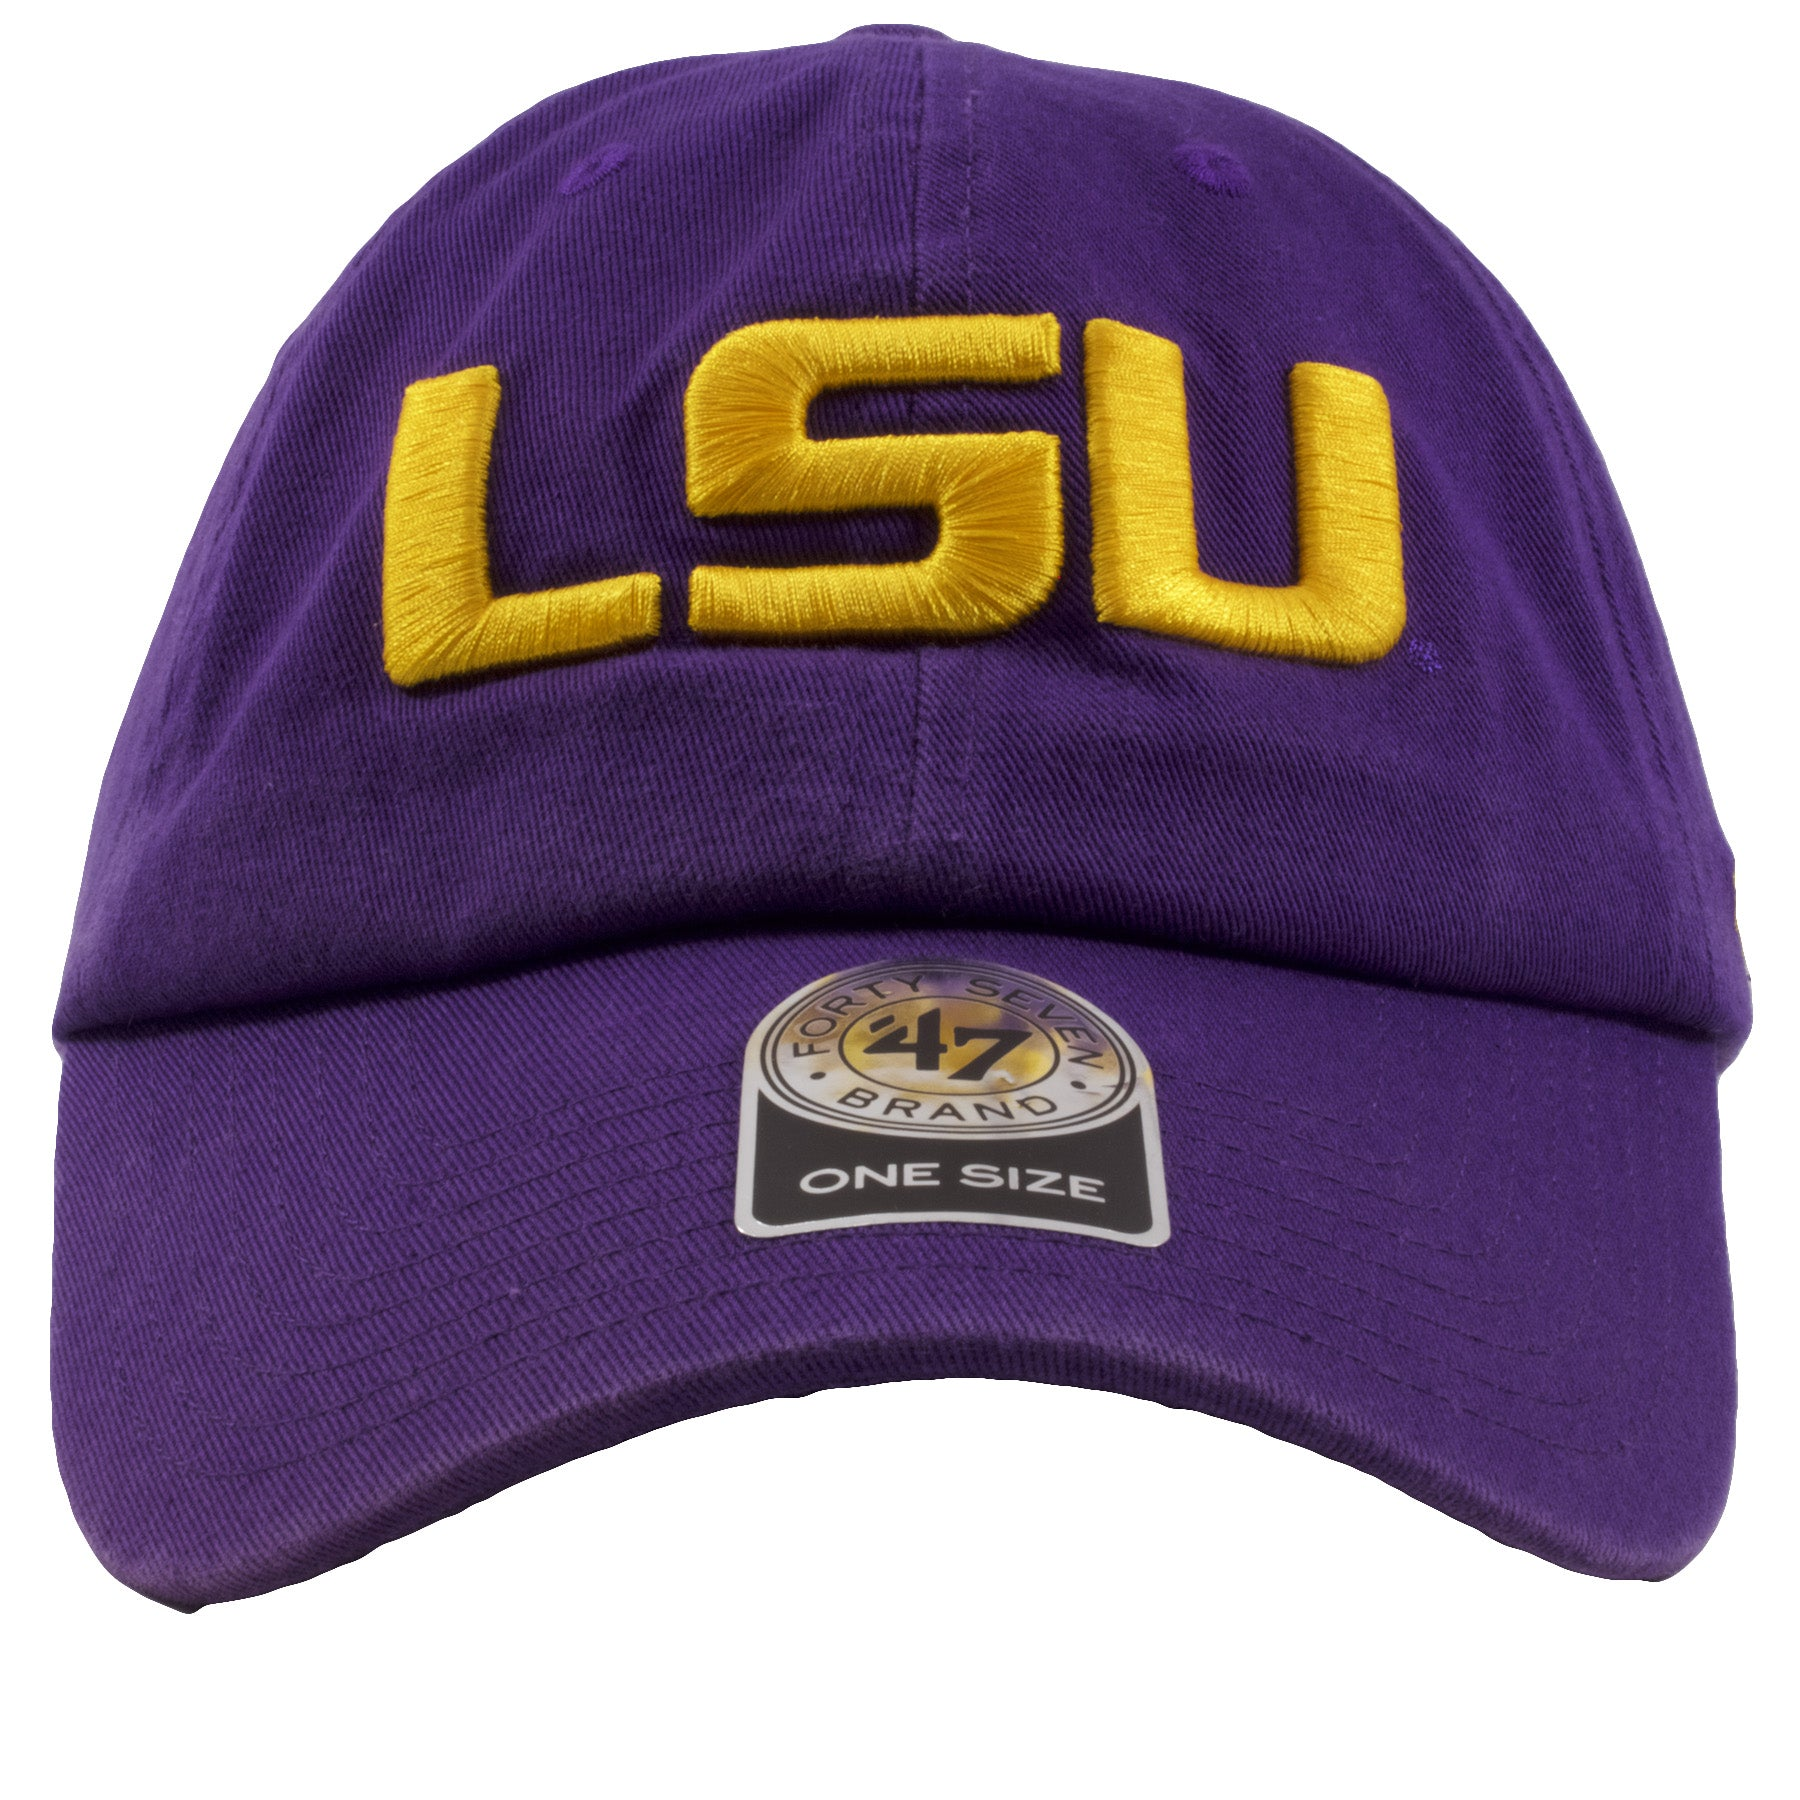 cb26c3aed5fb6 ... coupon code for embroidered on the front of the louisiana state  university dad hat is the